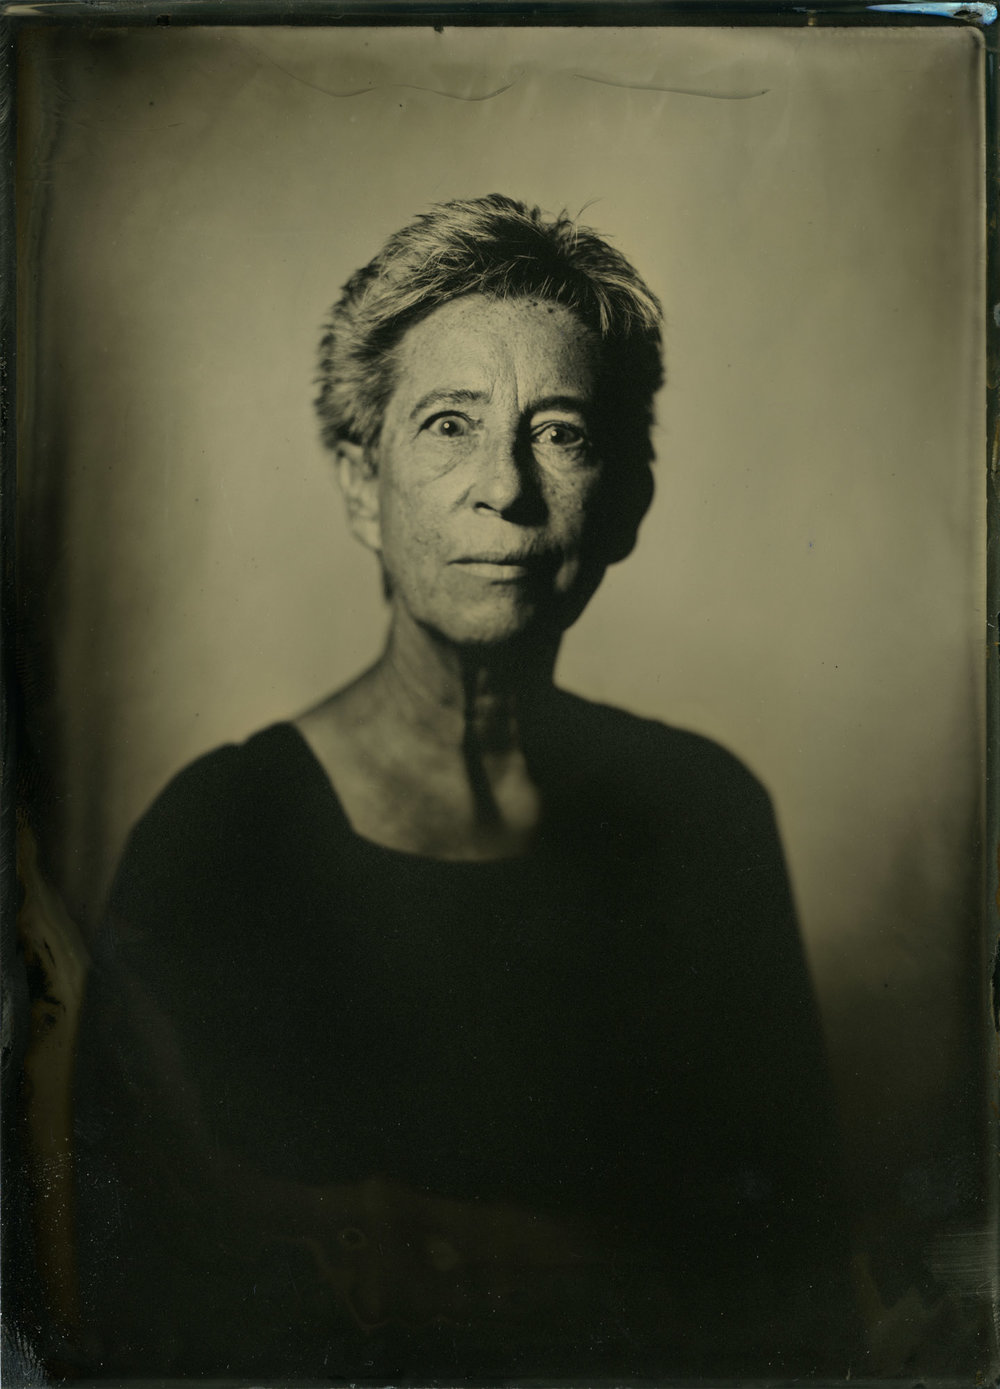 Parents_wet_plate_001_final_web.jpg